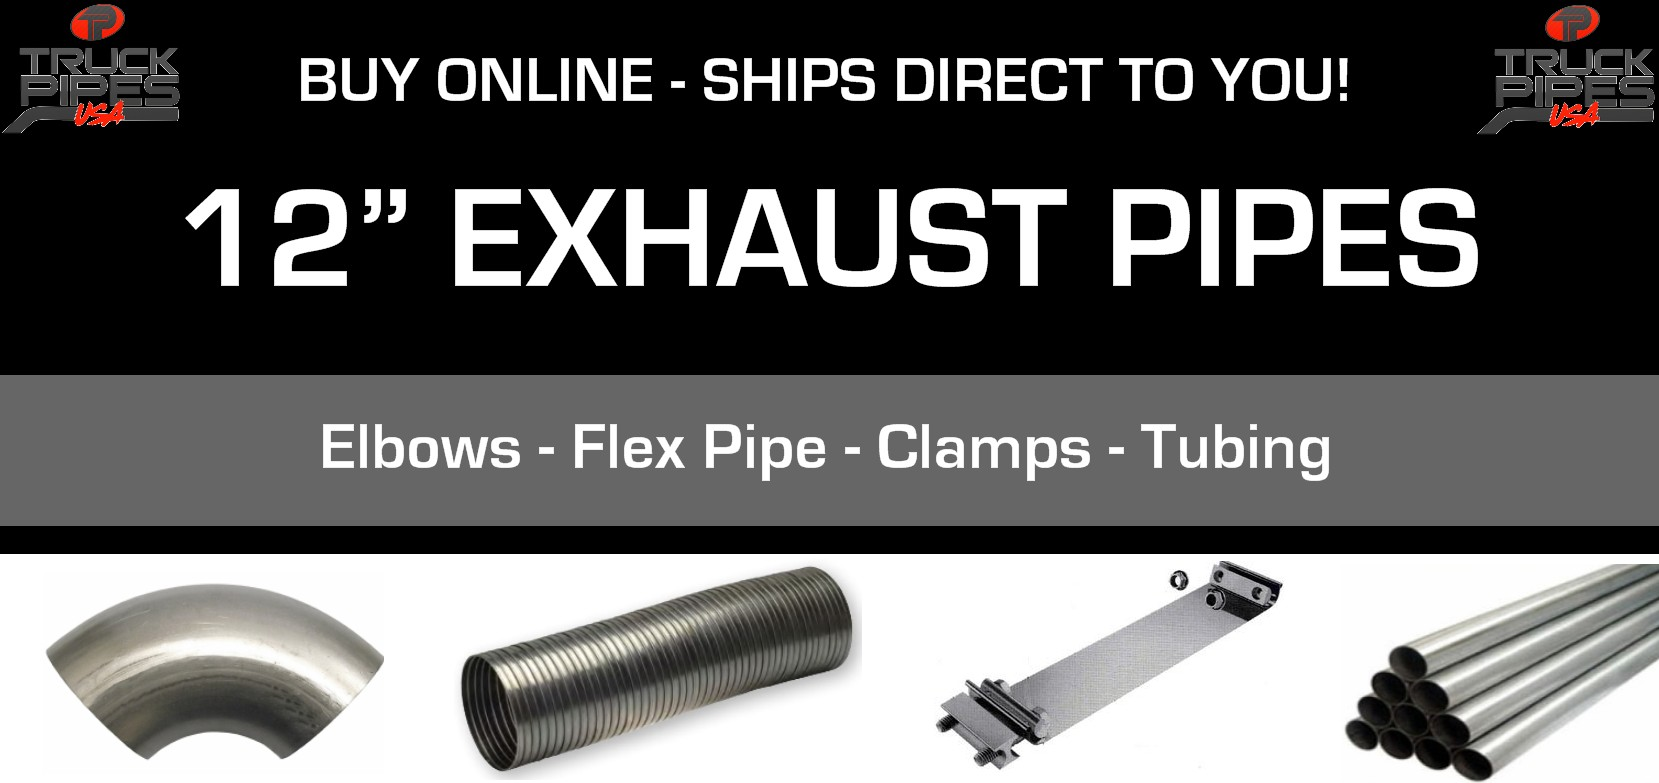 12-inch-exhaust-pipes.jpg